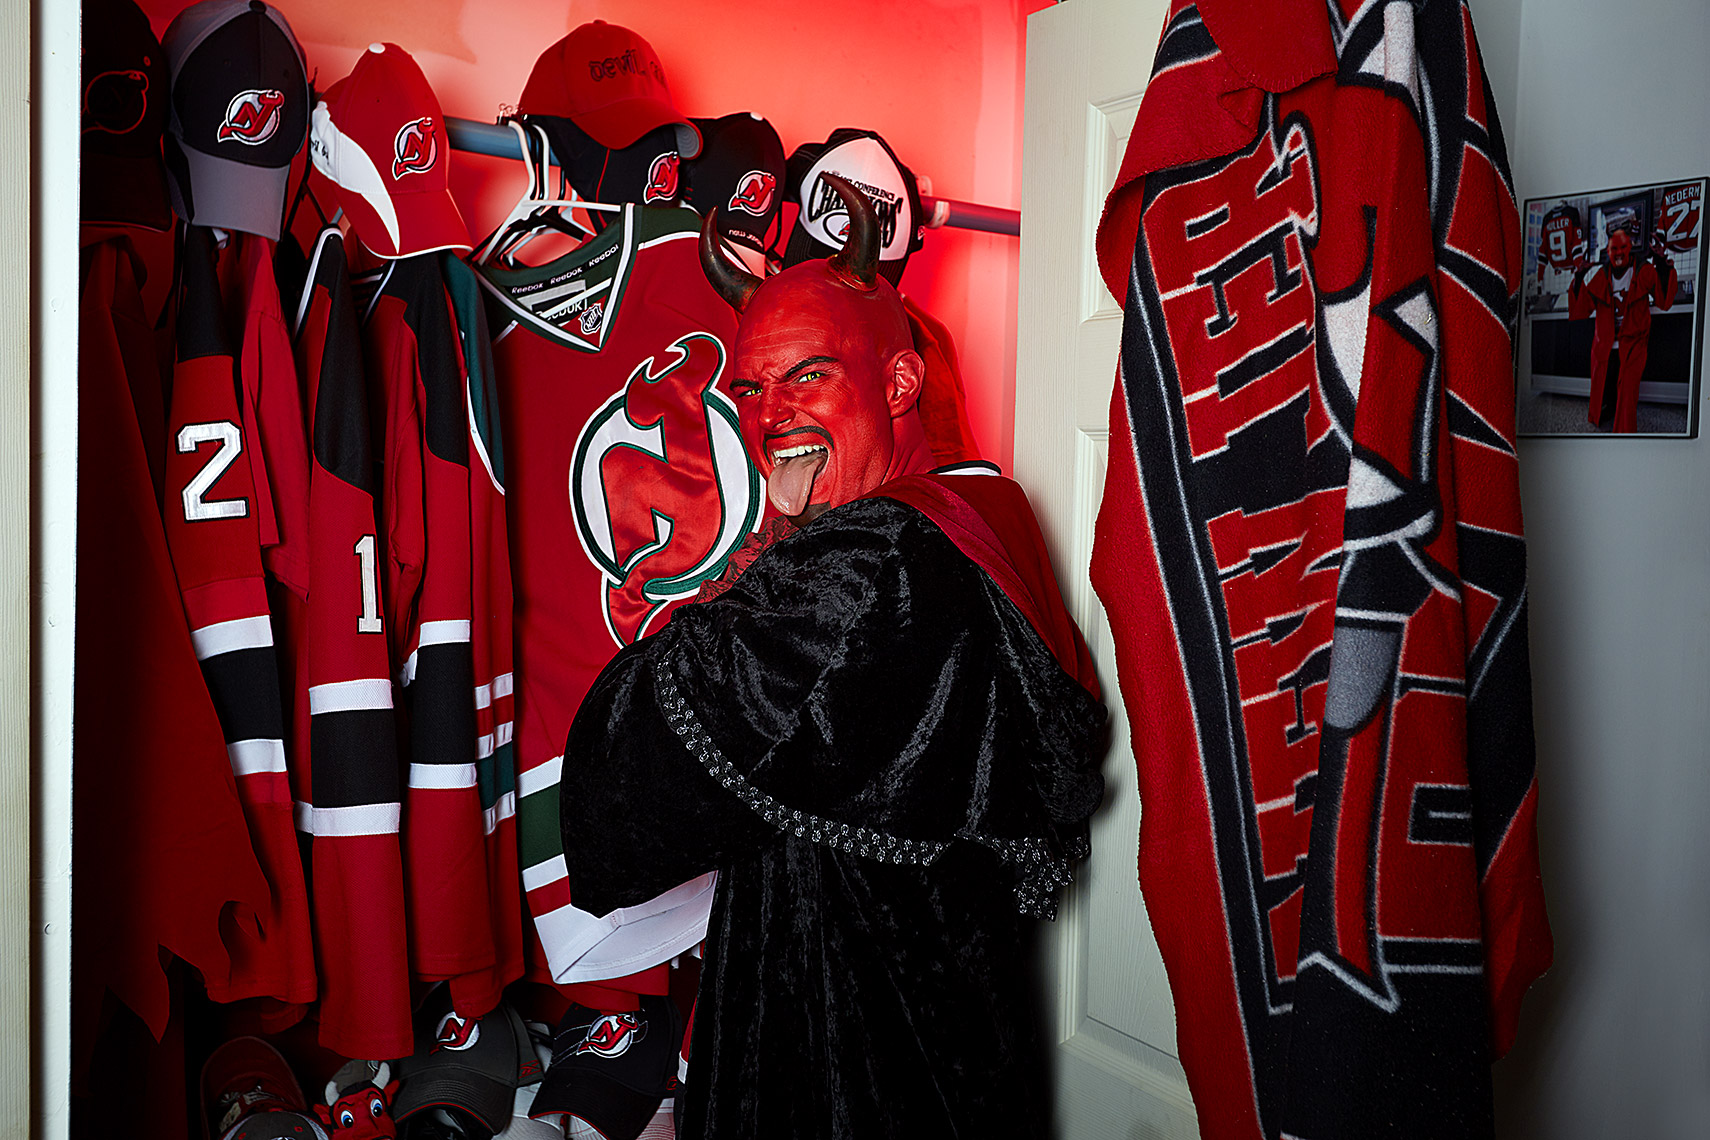 Philadelphia Photographer STEVE BOYLE - New Jersey Devils Fans - NHL Hockey